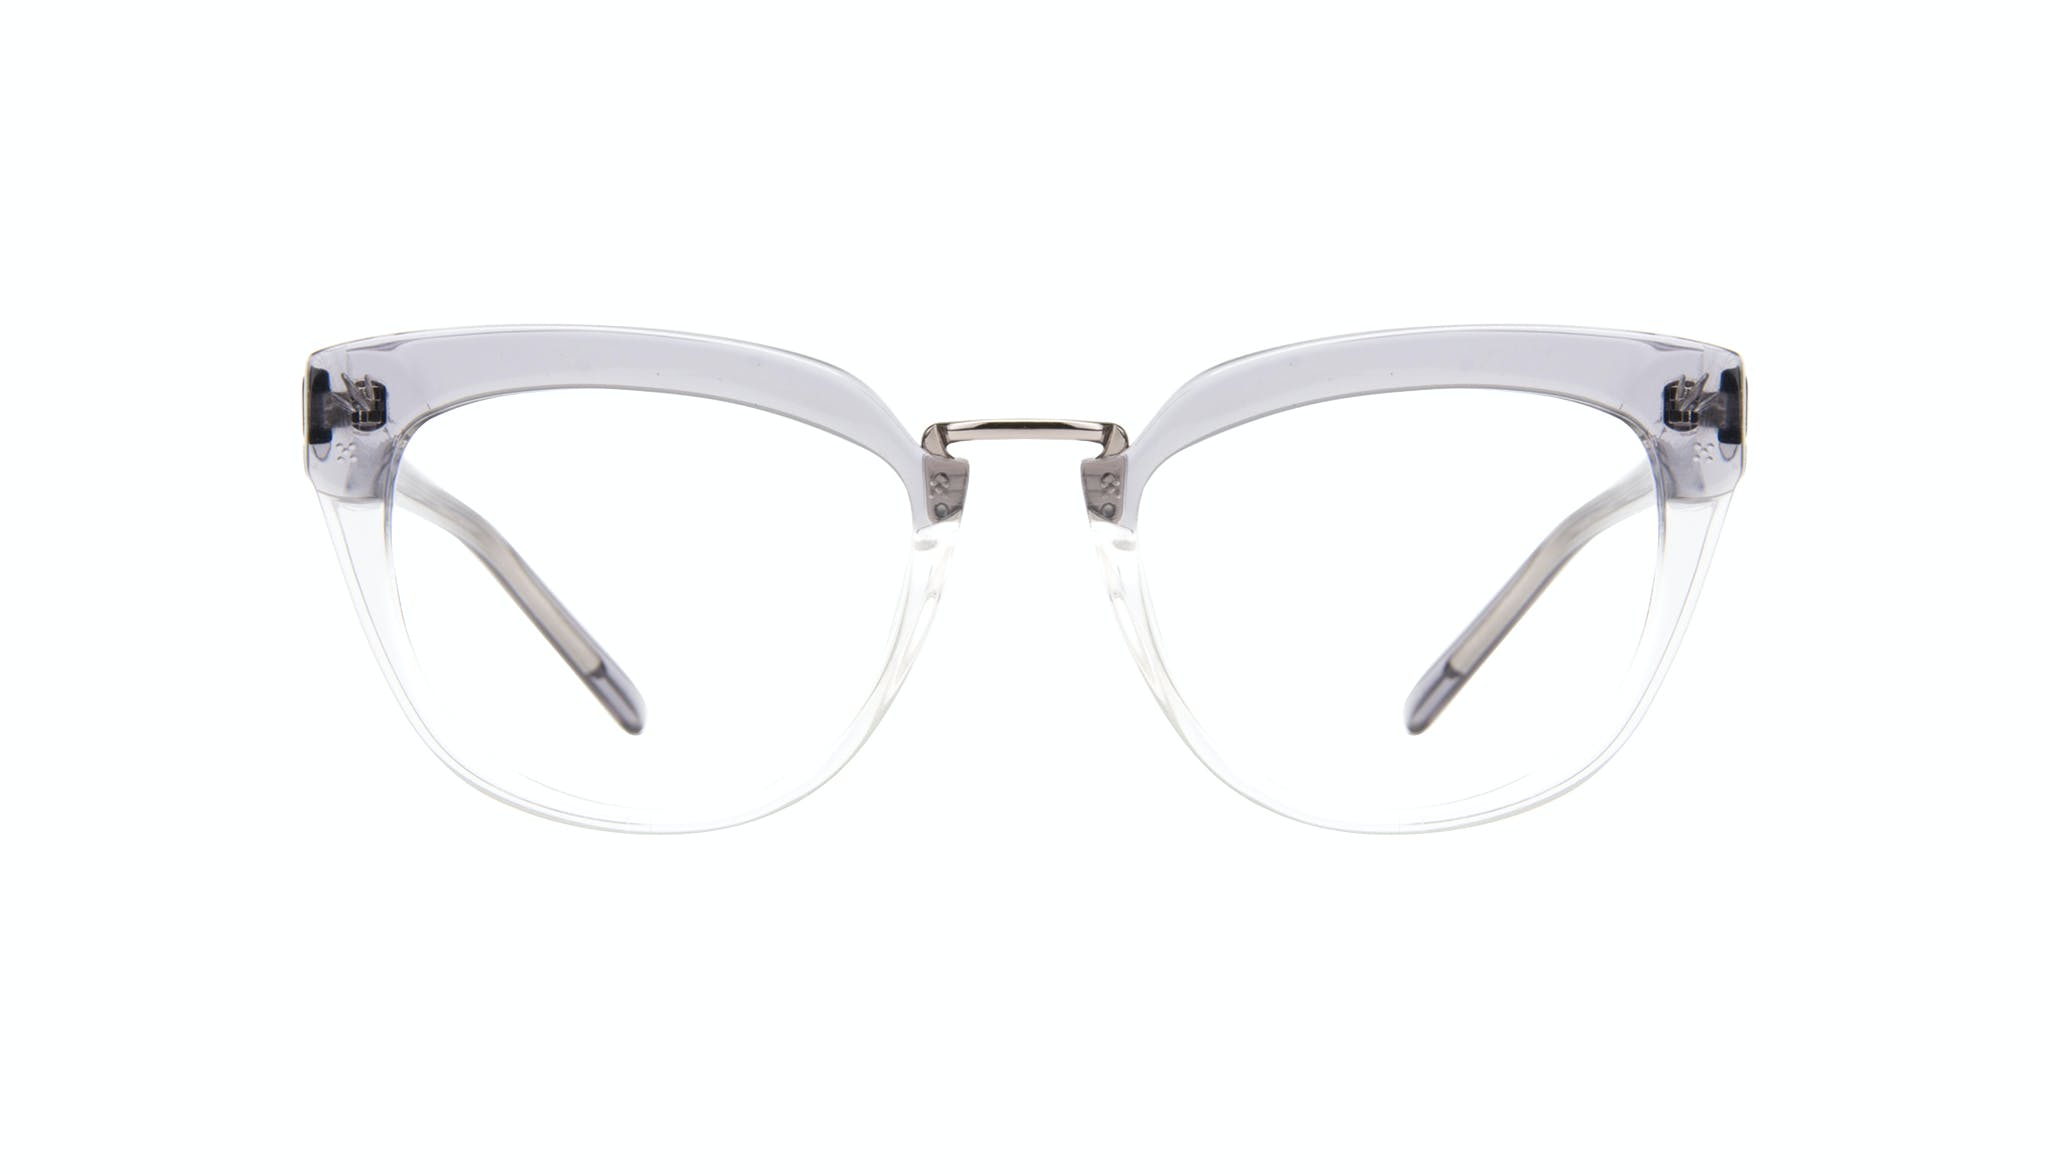 Affordable Fashion Glasses Cat Eye Daring Cateye Eyeglasses Women Pure Grey Front